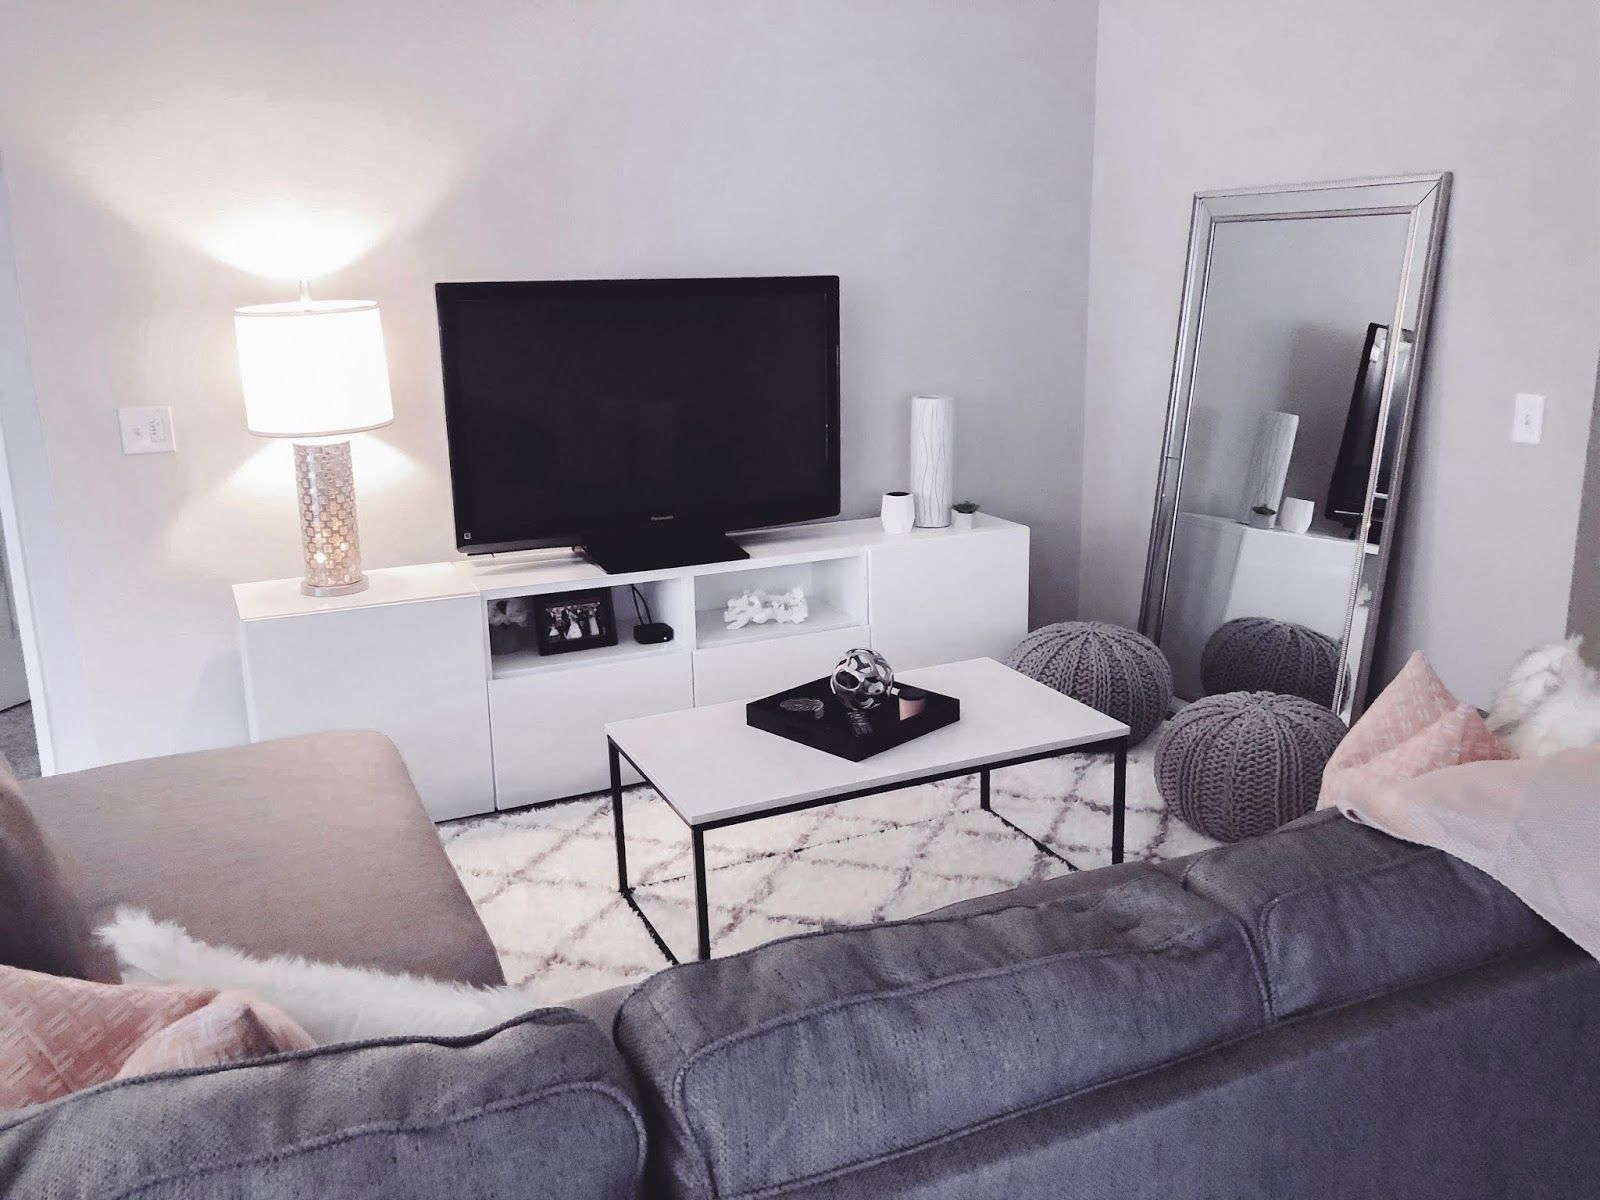 Affordable Apartment Decor In 2019 Home Decor Living